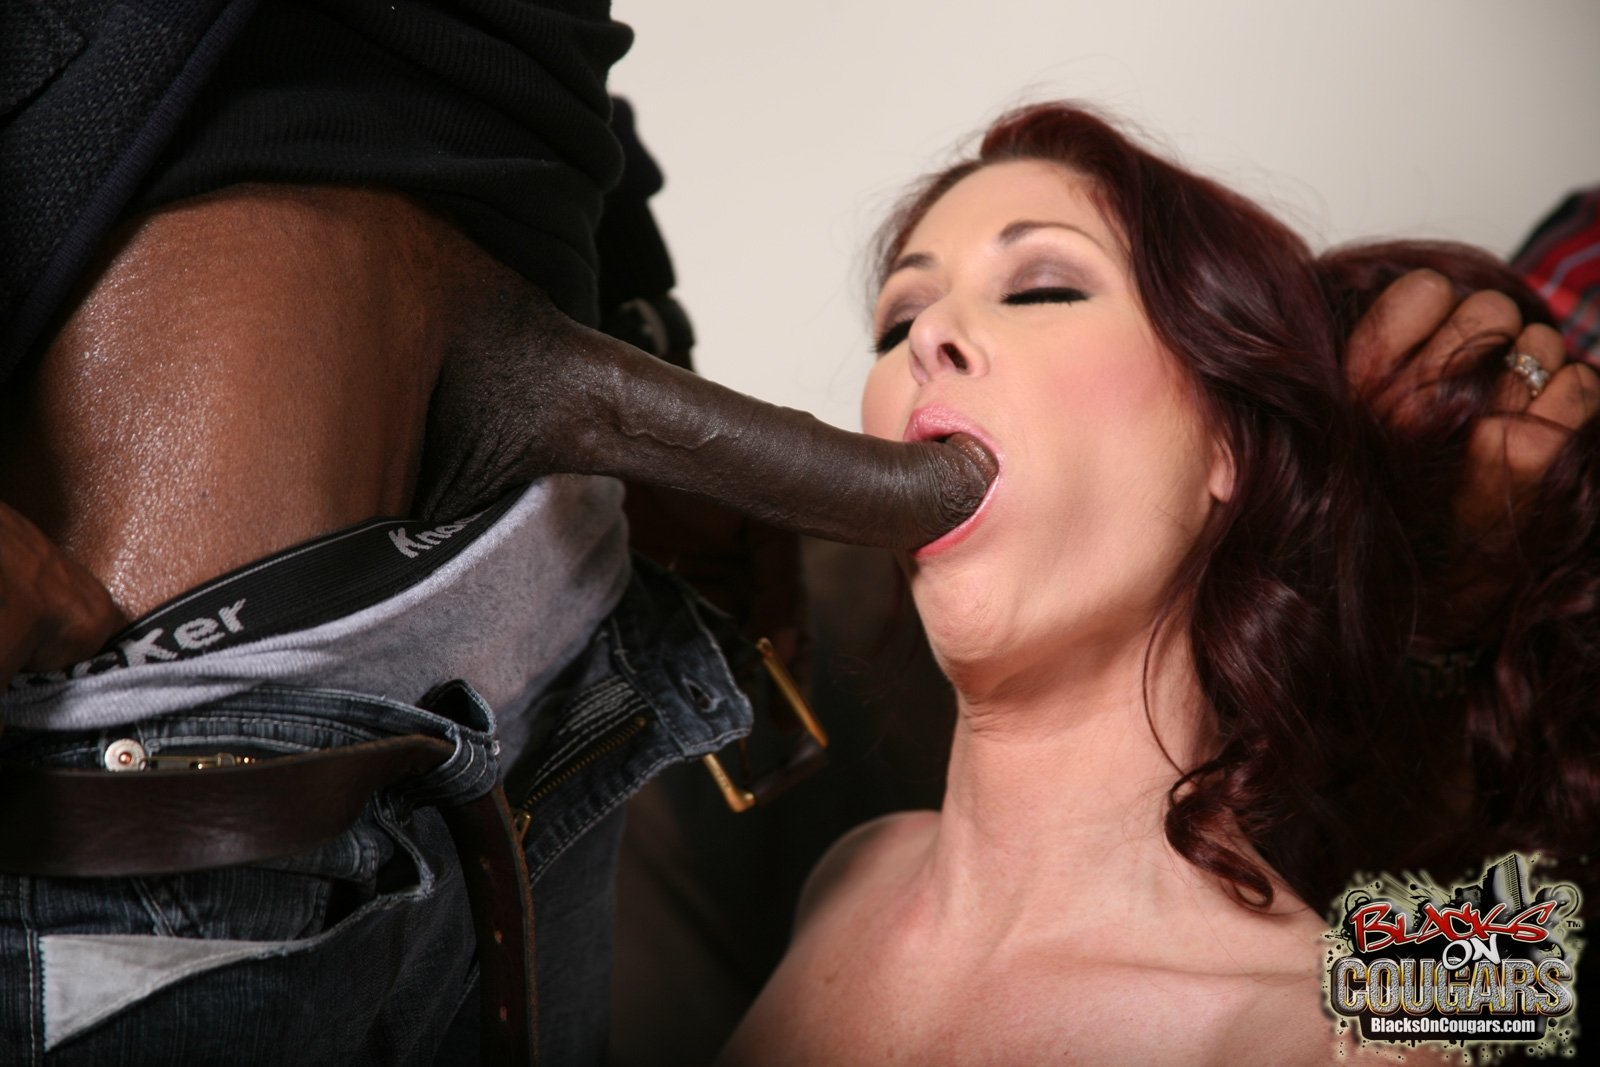 Sunny leone videos fucking his husband pictures of black lesbians having sex